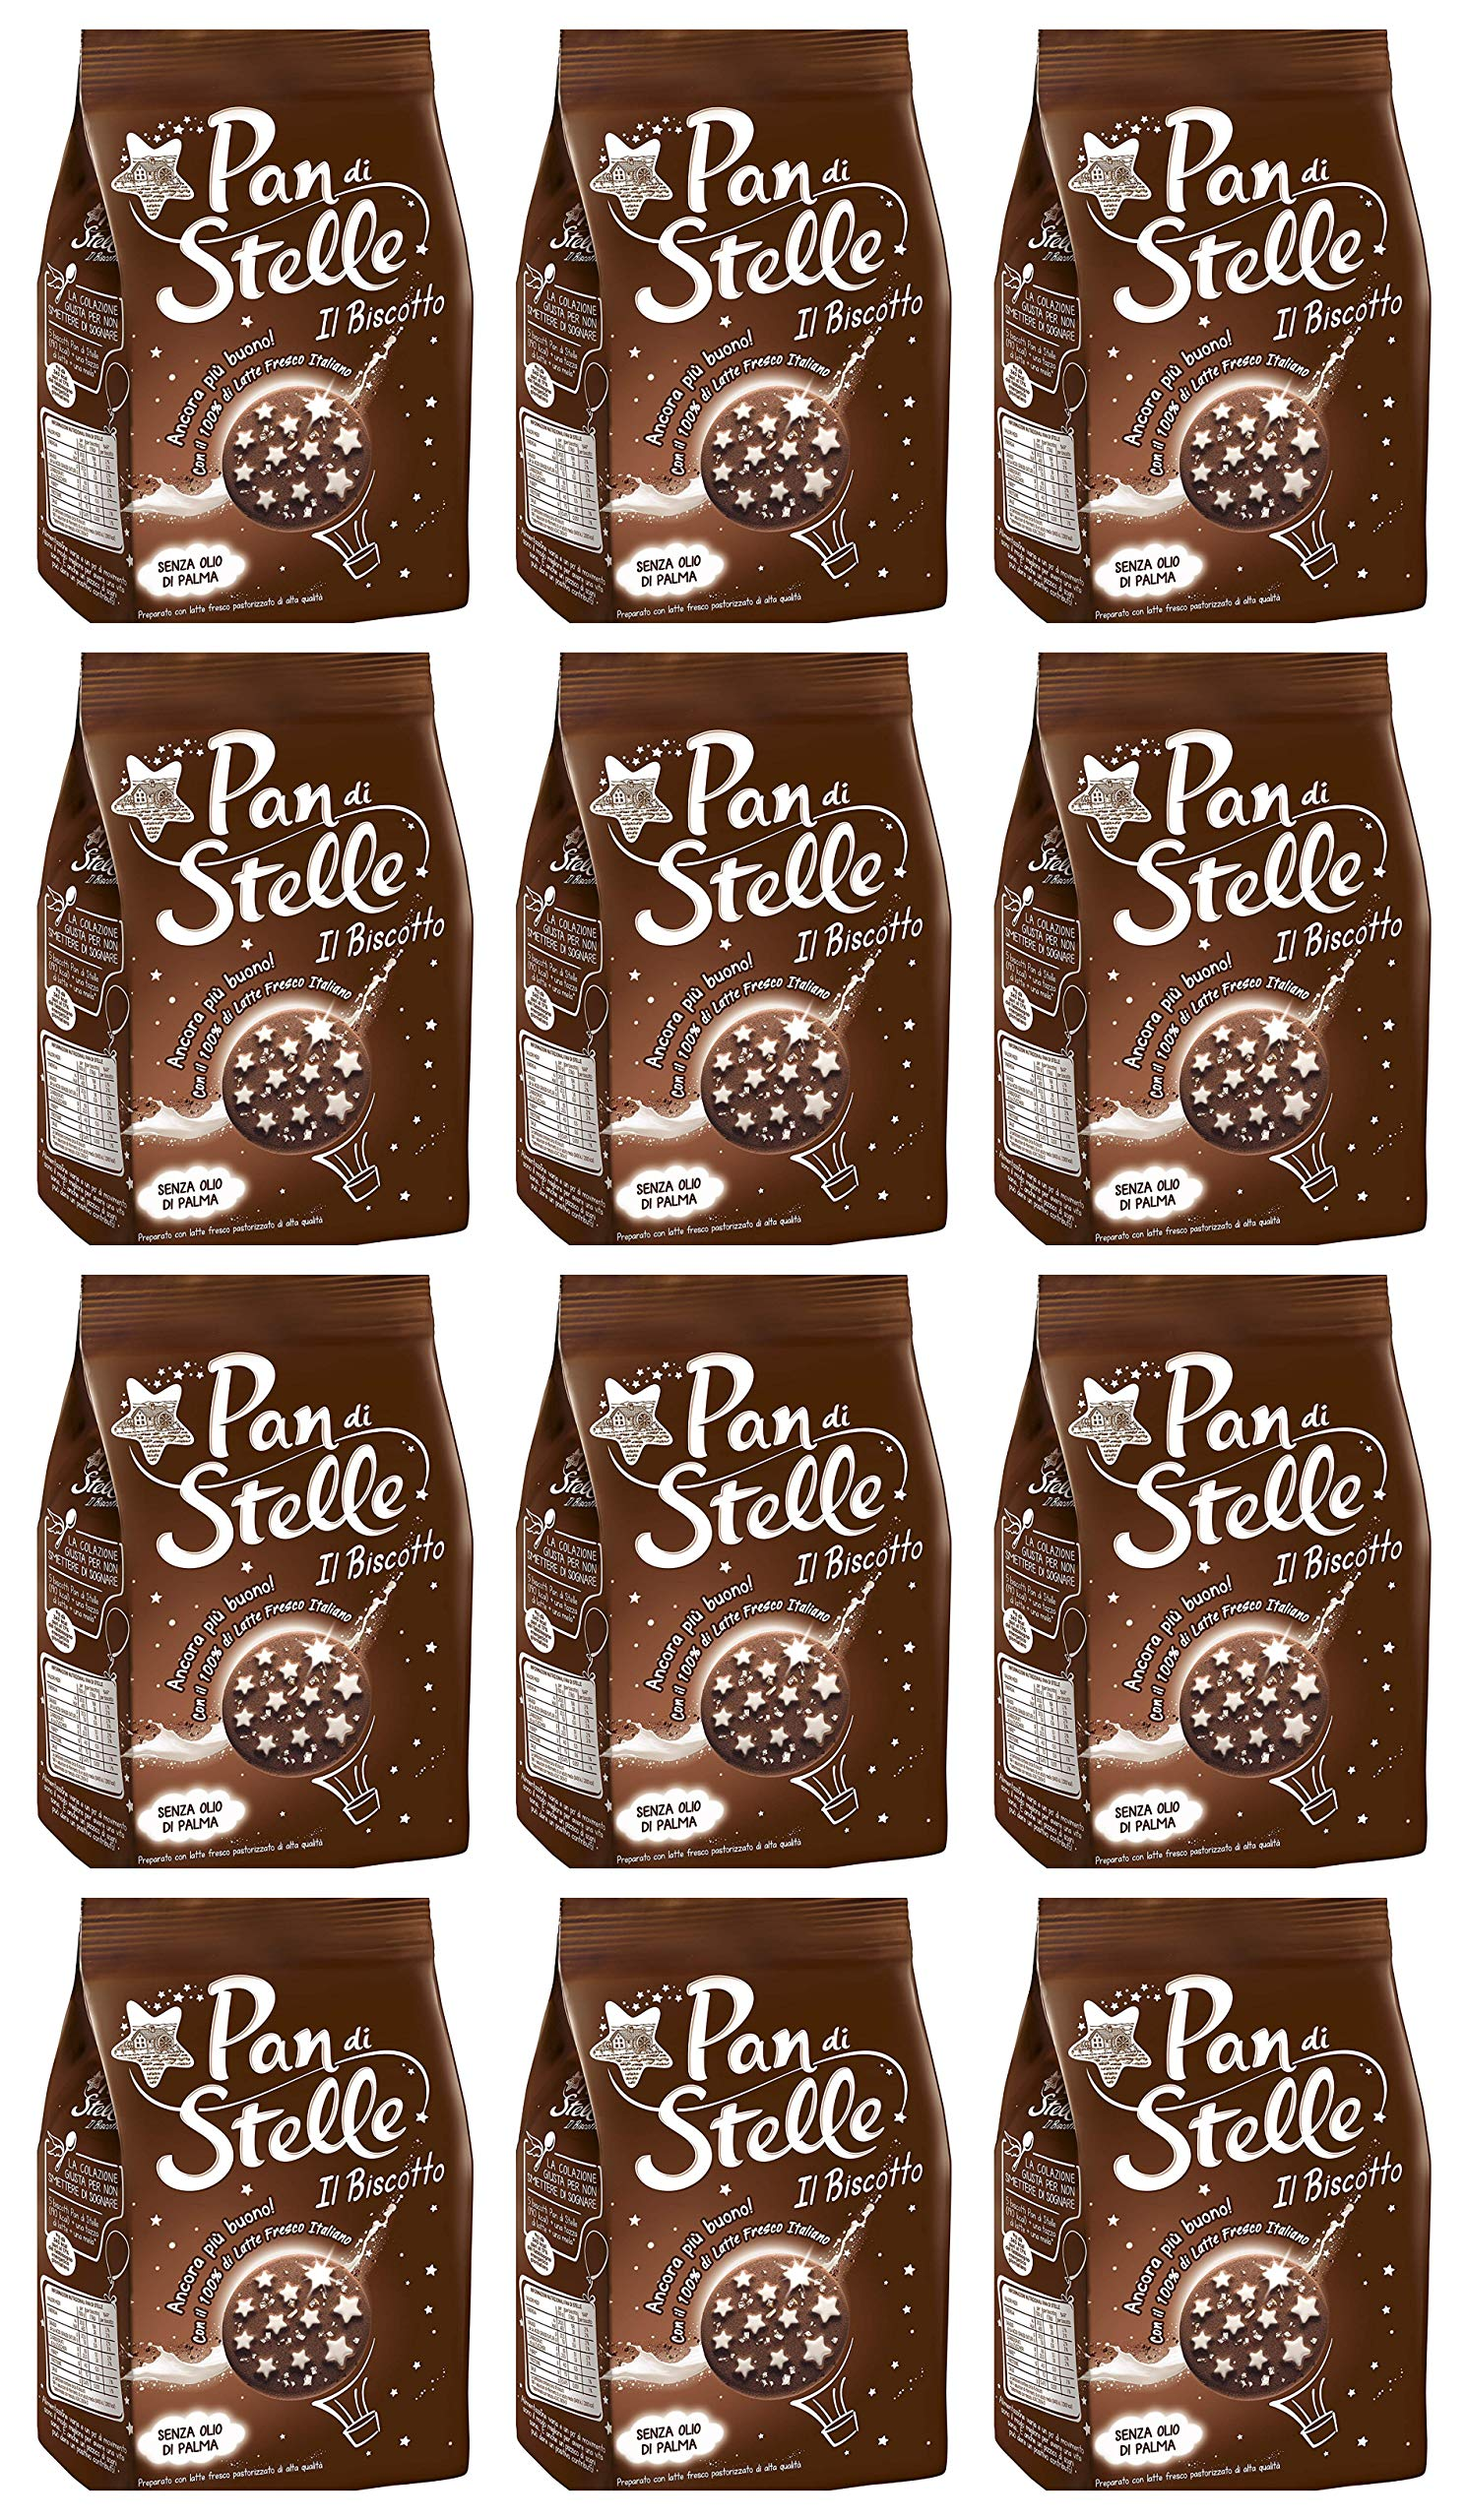 Pan di Stelle - Mulino Bianco 12.3 oz (350g) From Italy Pack of 12